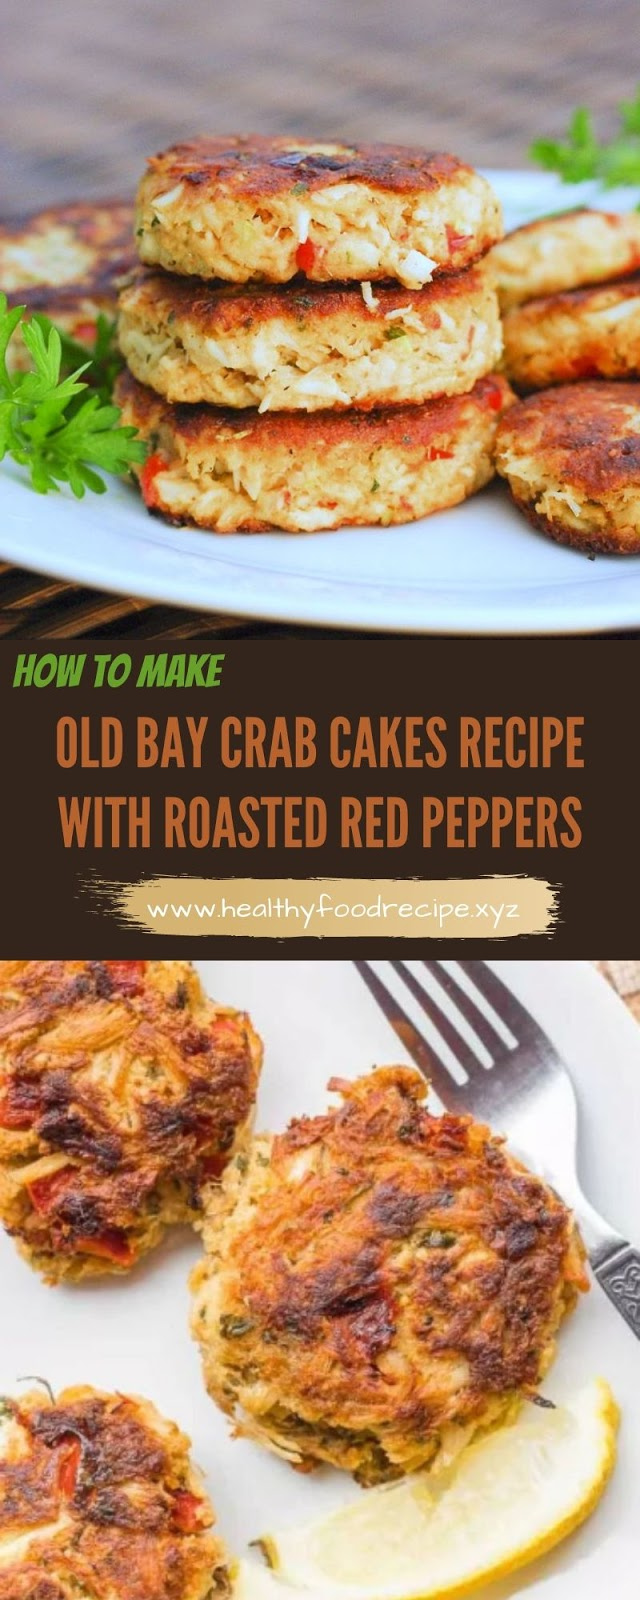 OLD BAY CRAB CAKES RECIPE WITH ROASTED RED PEPPERS